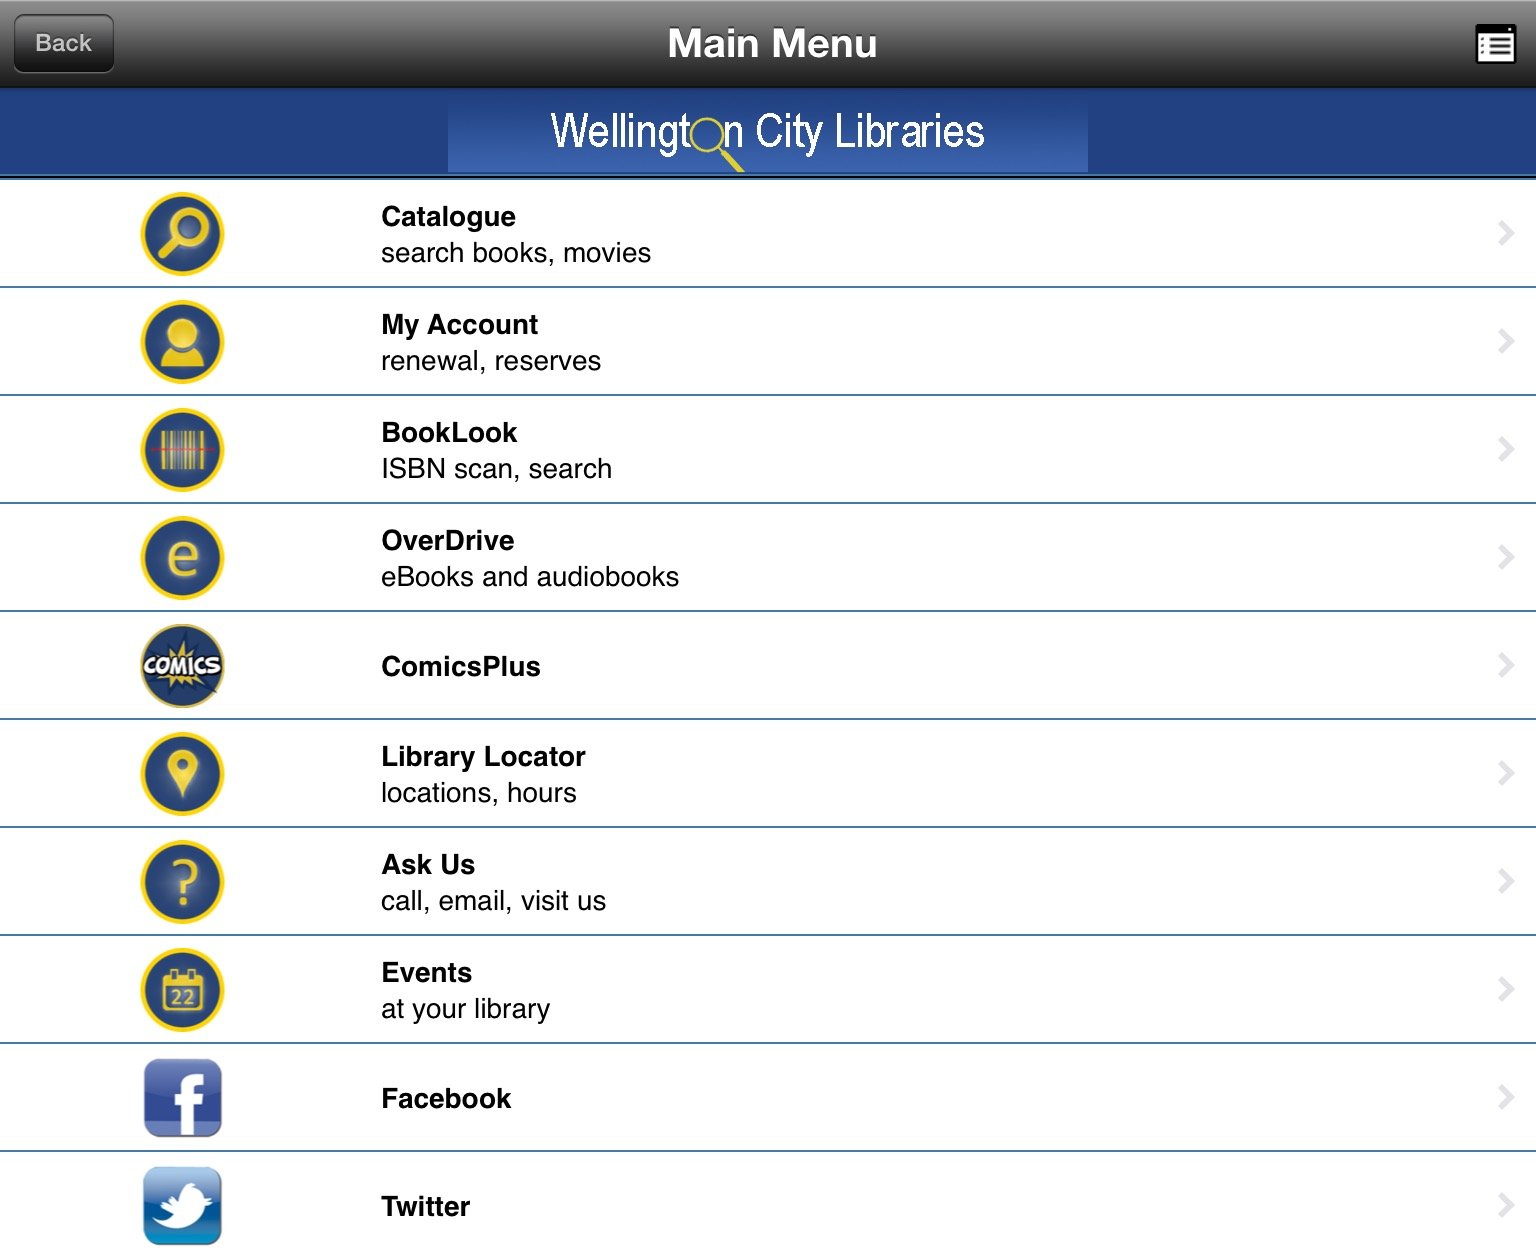 WCL app screenshot